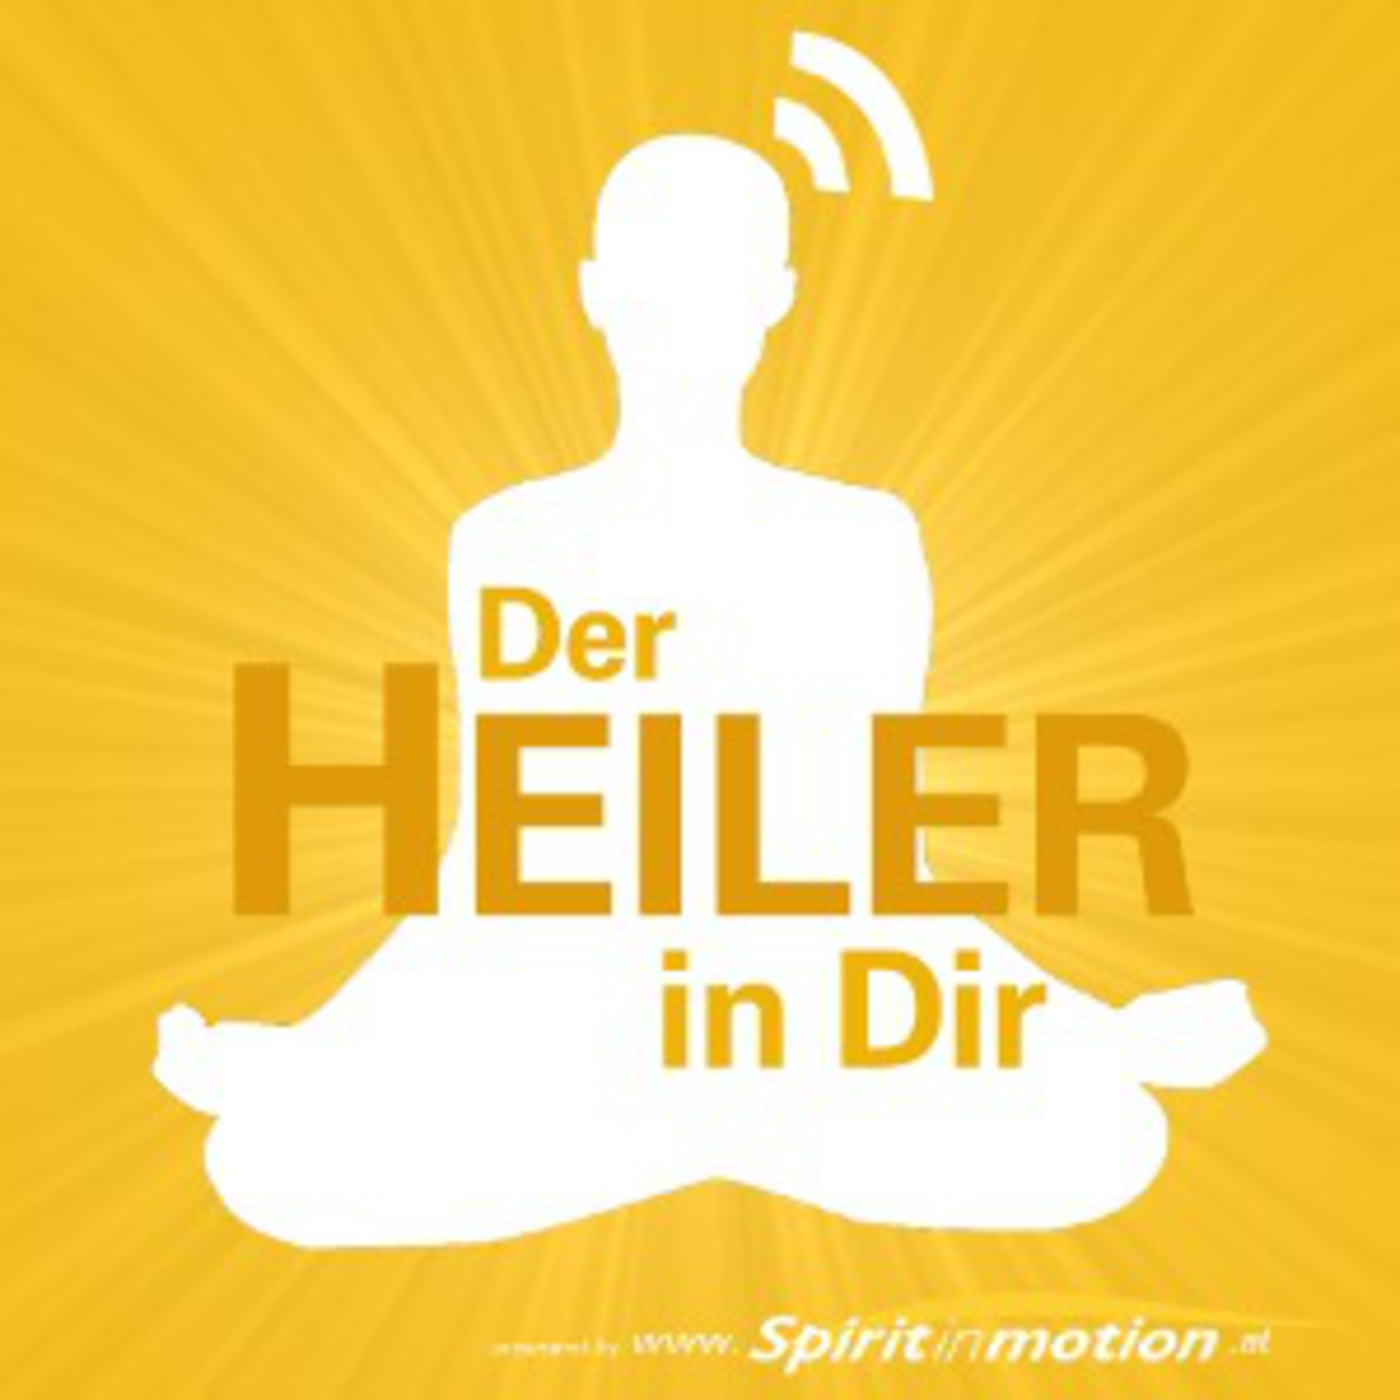 Podcast - Der Heiler in dir